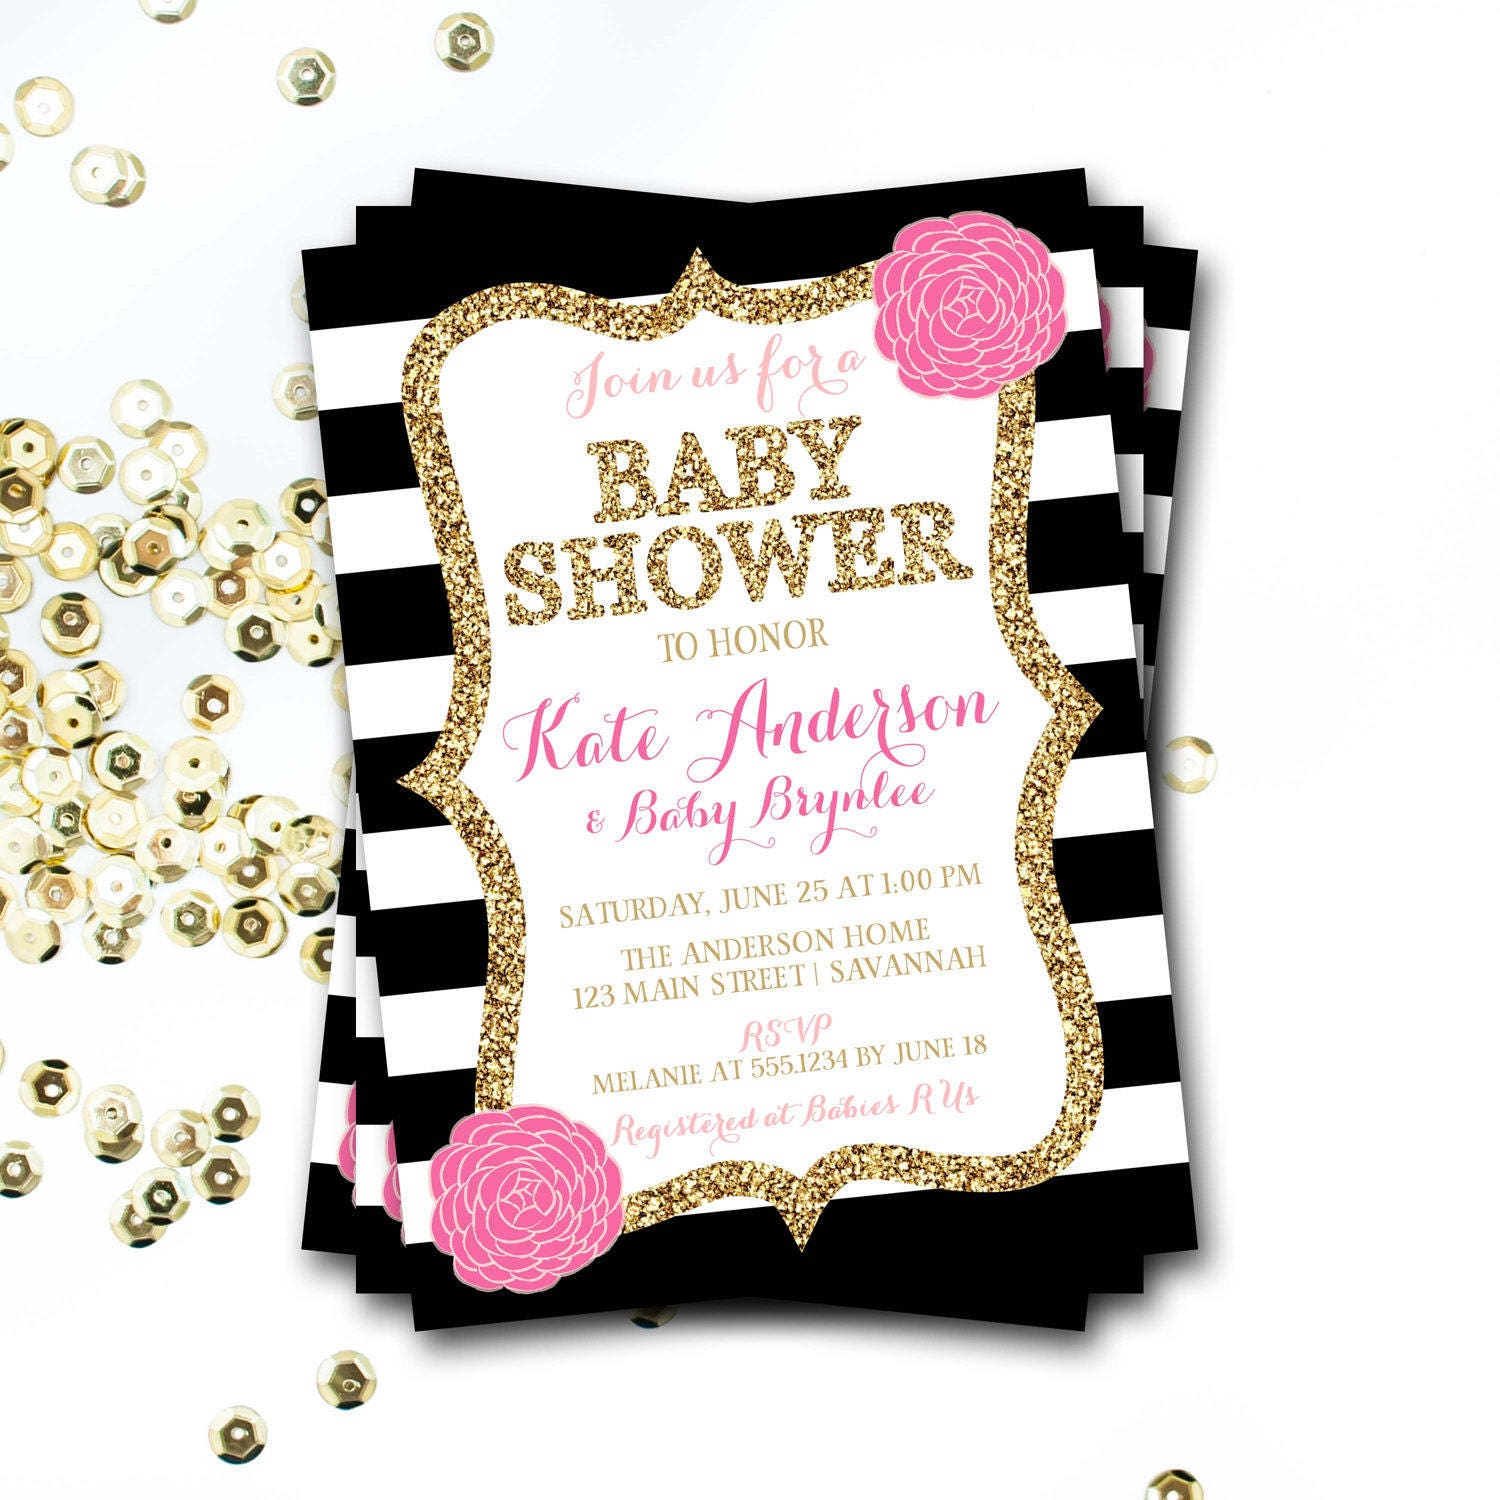 Pink black and gold baby shower invitation pink floral baby shower pink black and gold baby shower invitation pink floral baby shower pink and gold baby shower invitation gold glitter baby shower filmwisefo